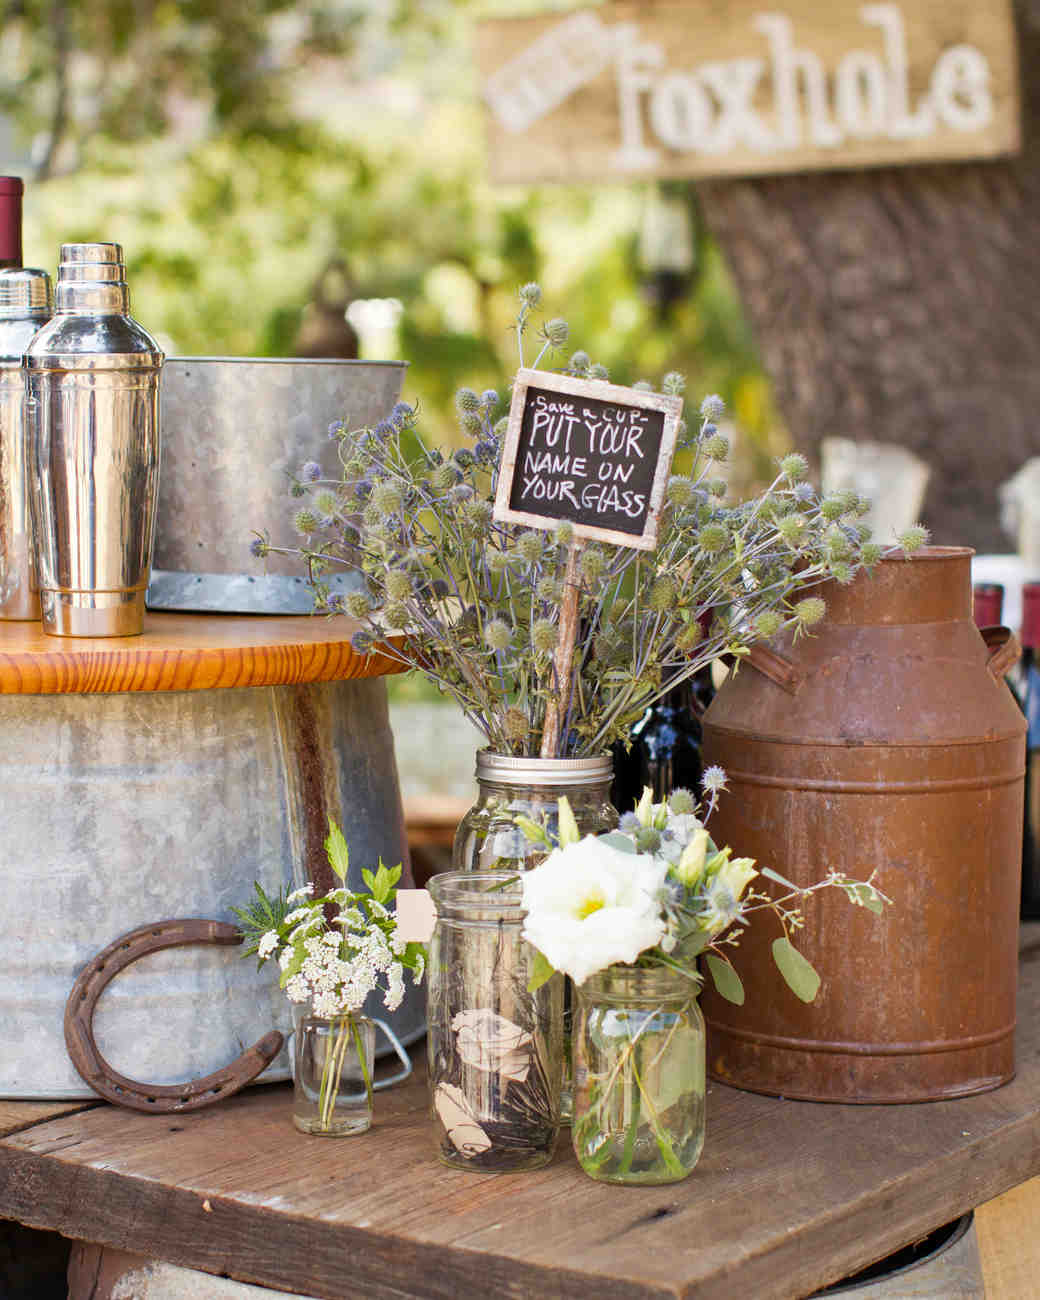 Best Rustic Ideas For Your Wedding: A Vintage DIY Rustic Wedding On A Ranch In California